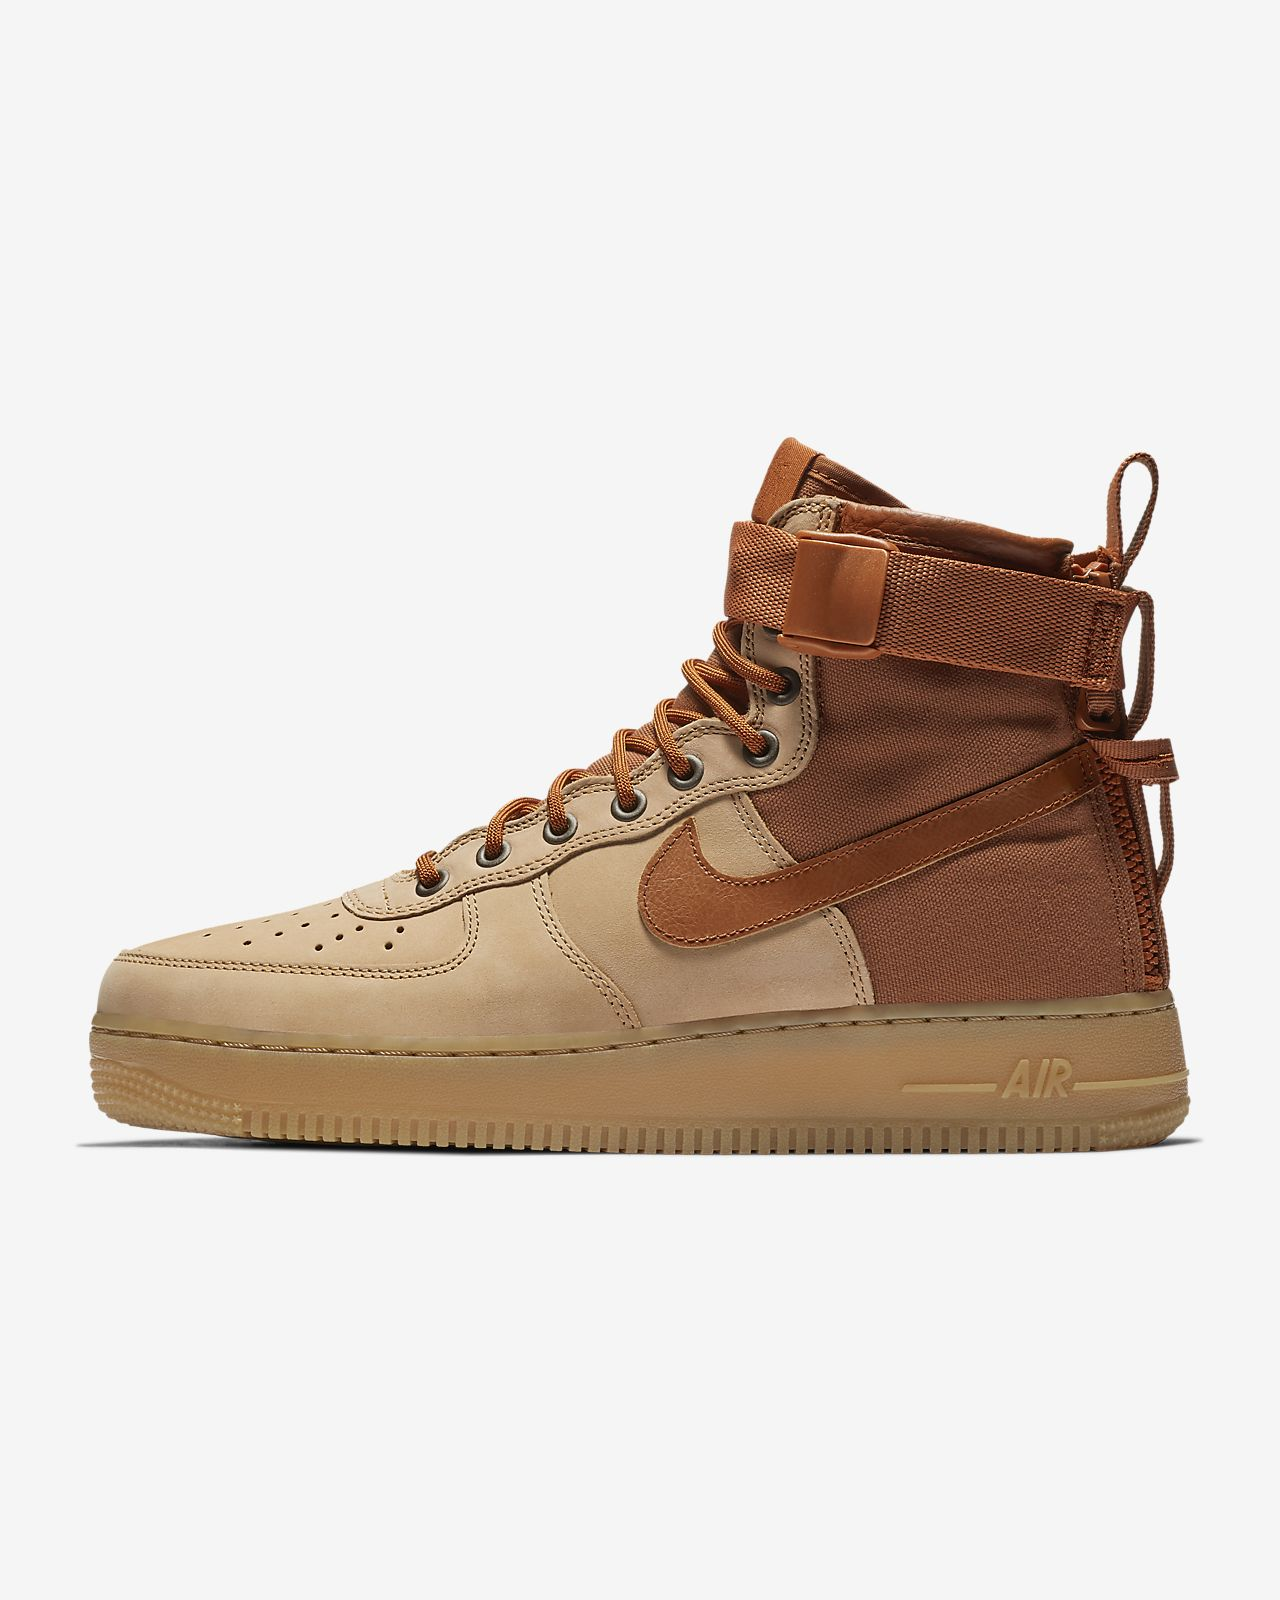 air force 1 sf